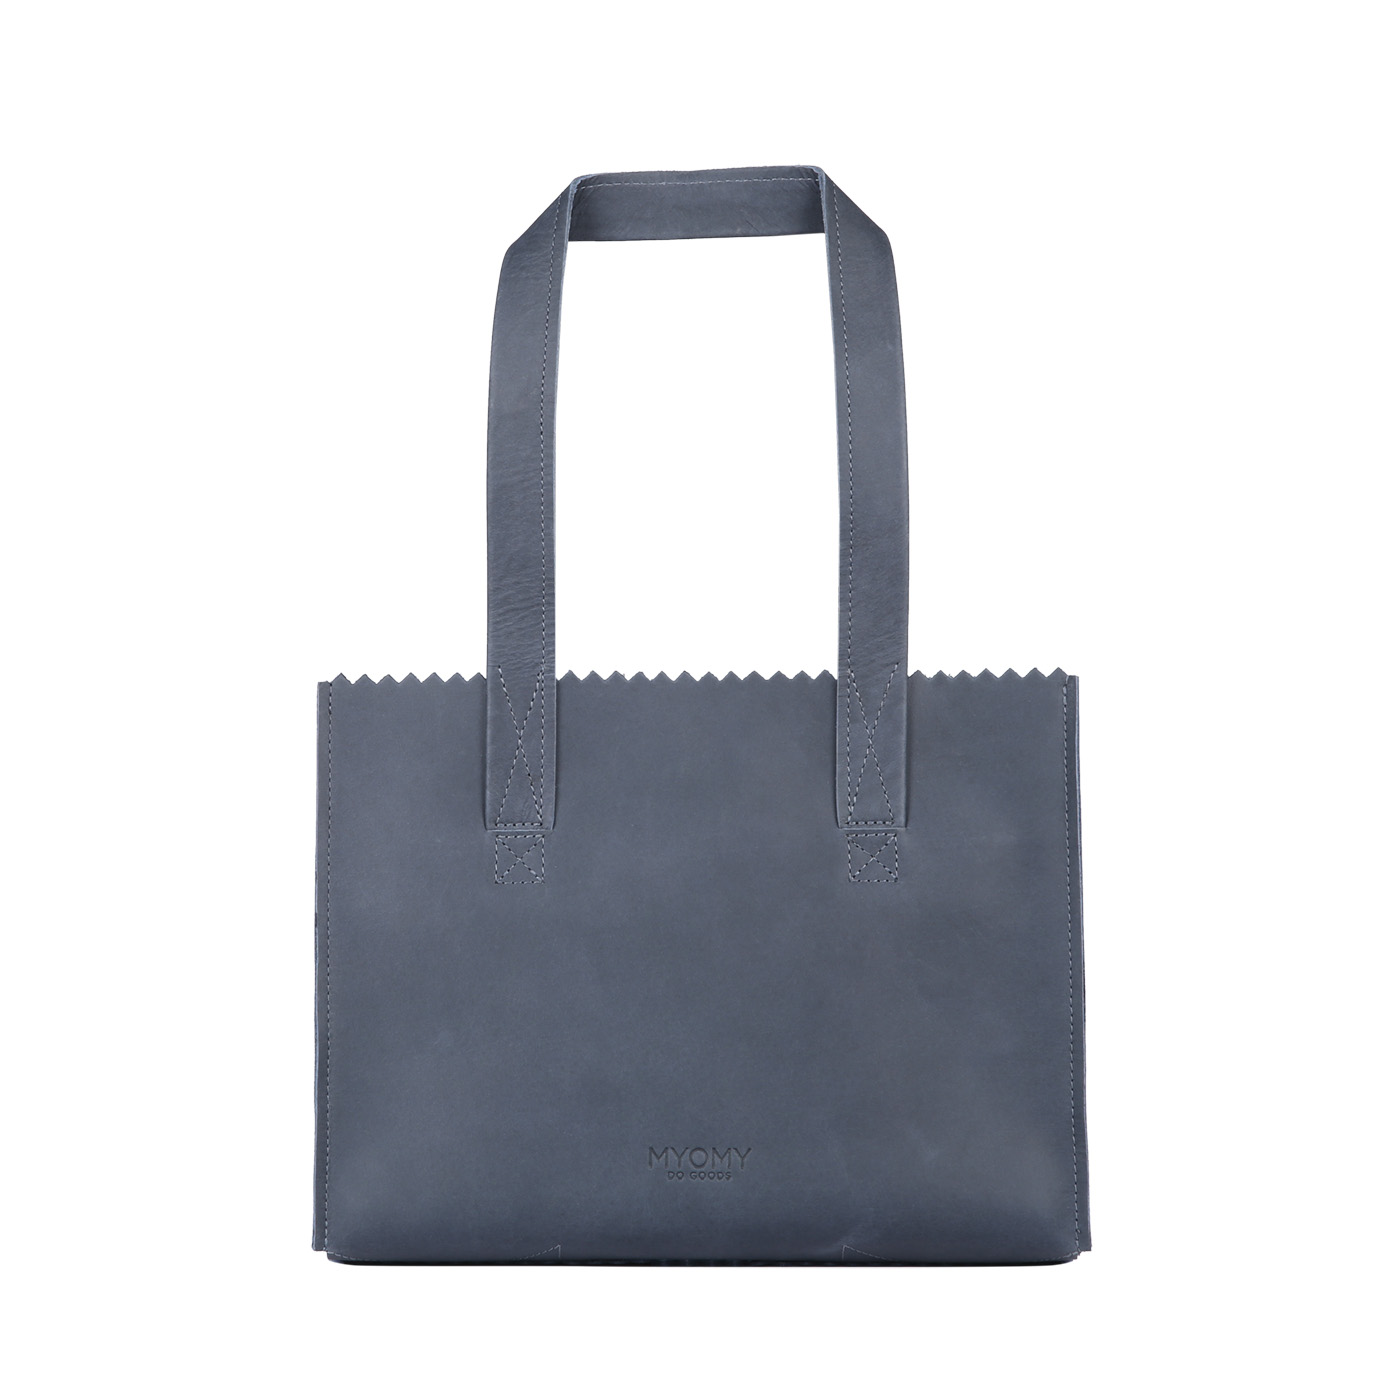 MY PAPER BAG Handbag – hunter navy blue